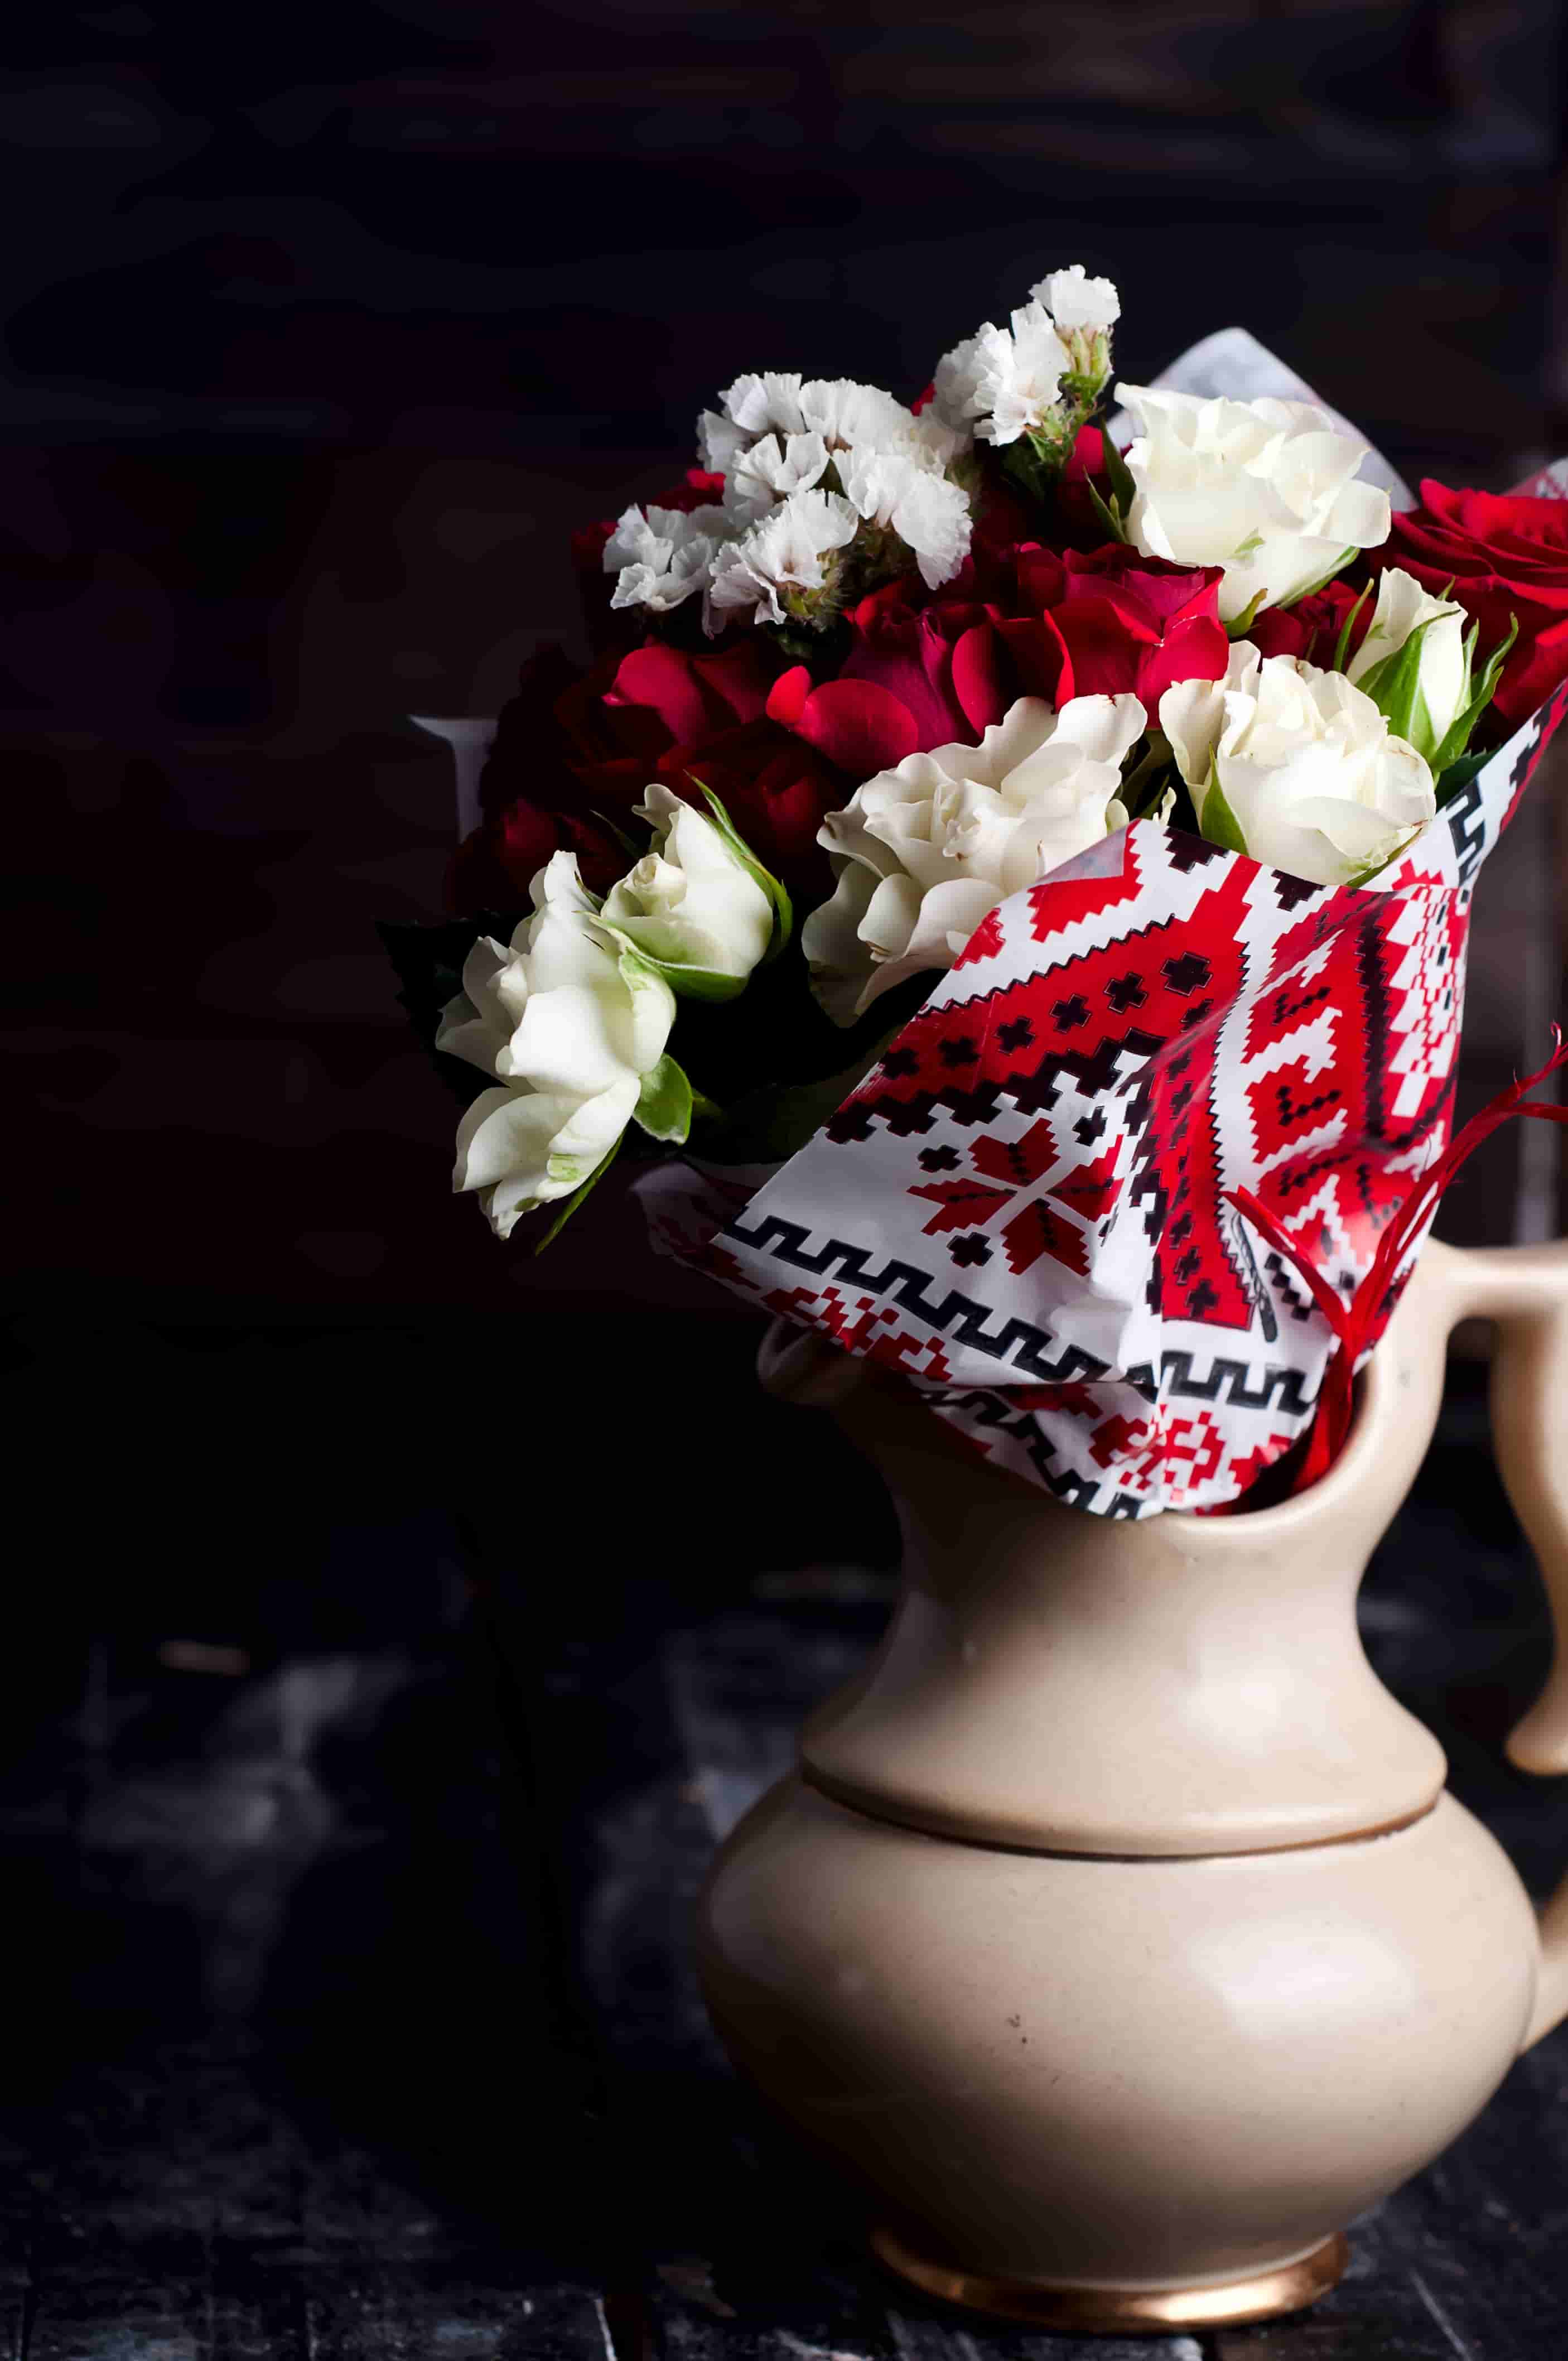 bouquet of red and white roses images in hd